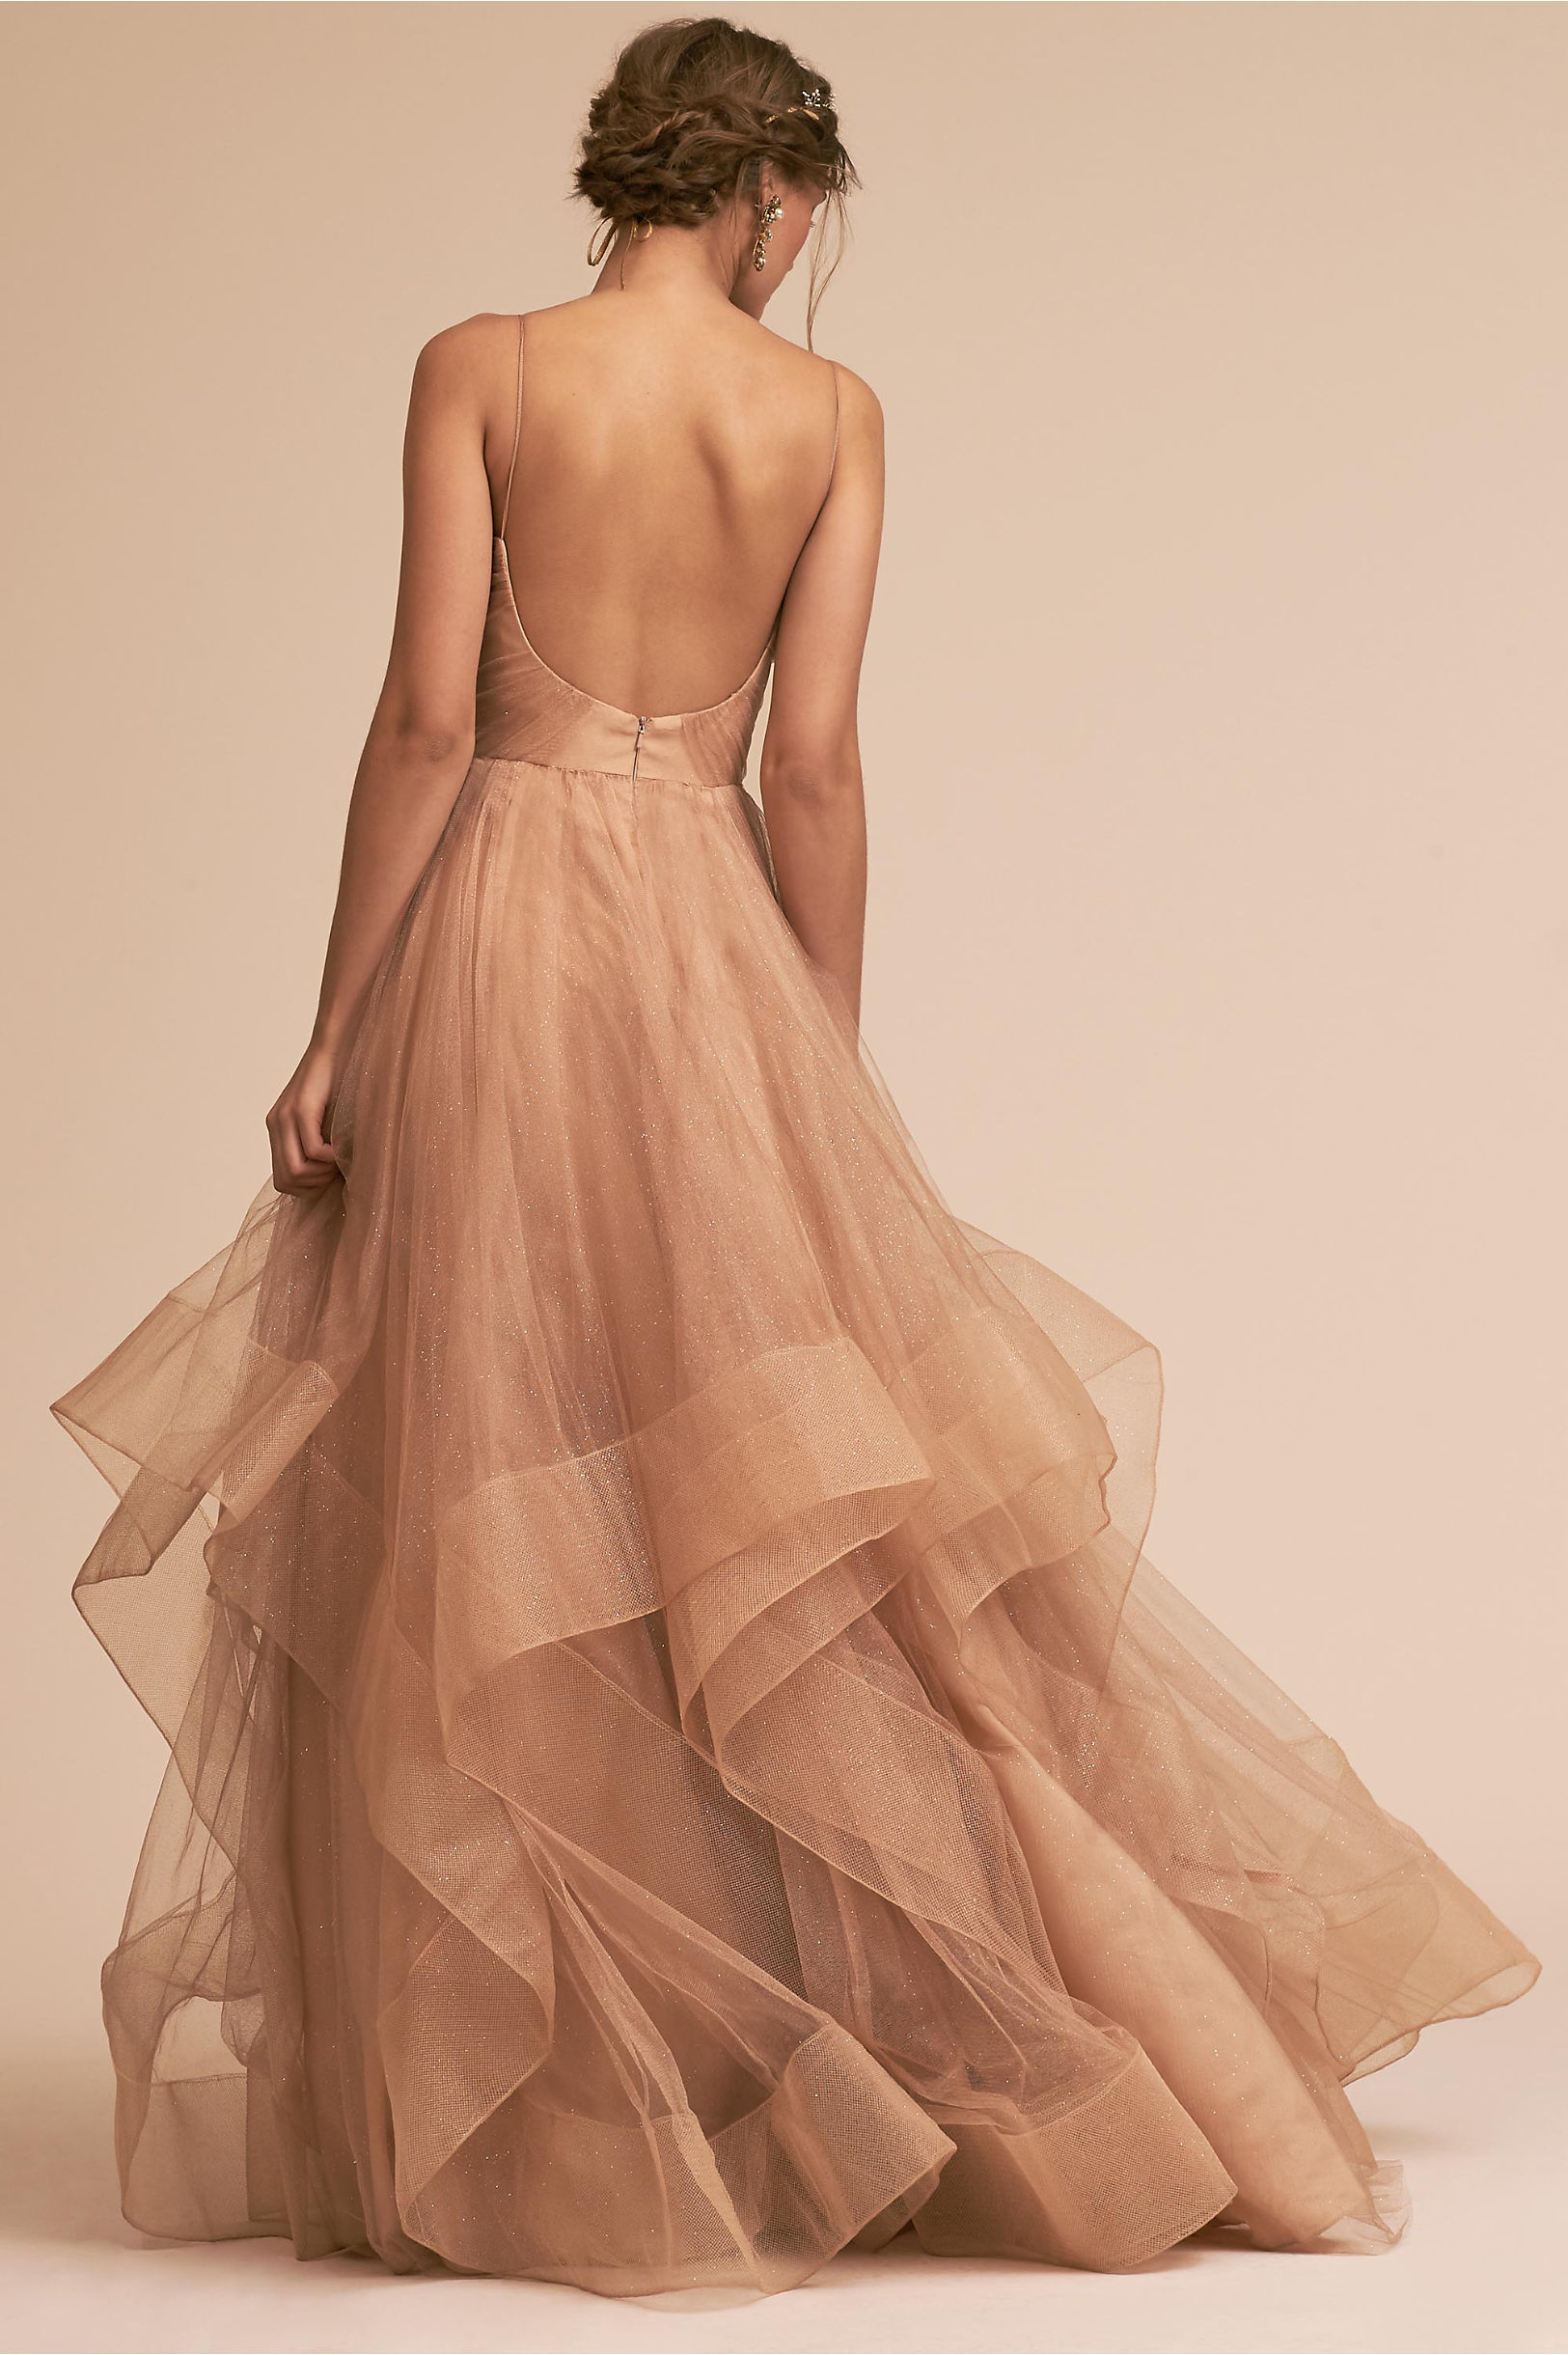 Chantelle Dress Gold in Occasion Dresses | BHLDN